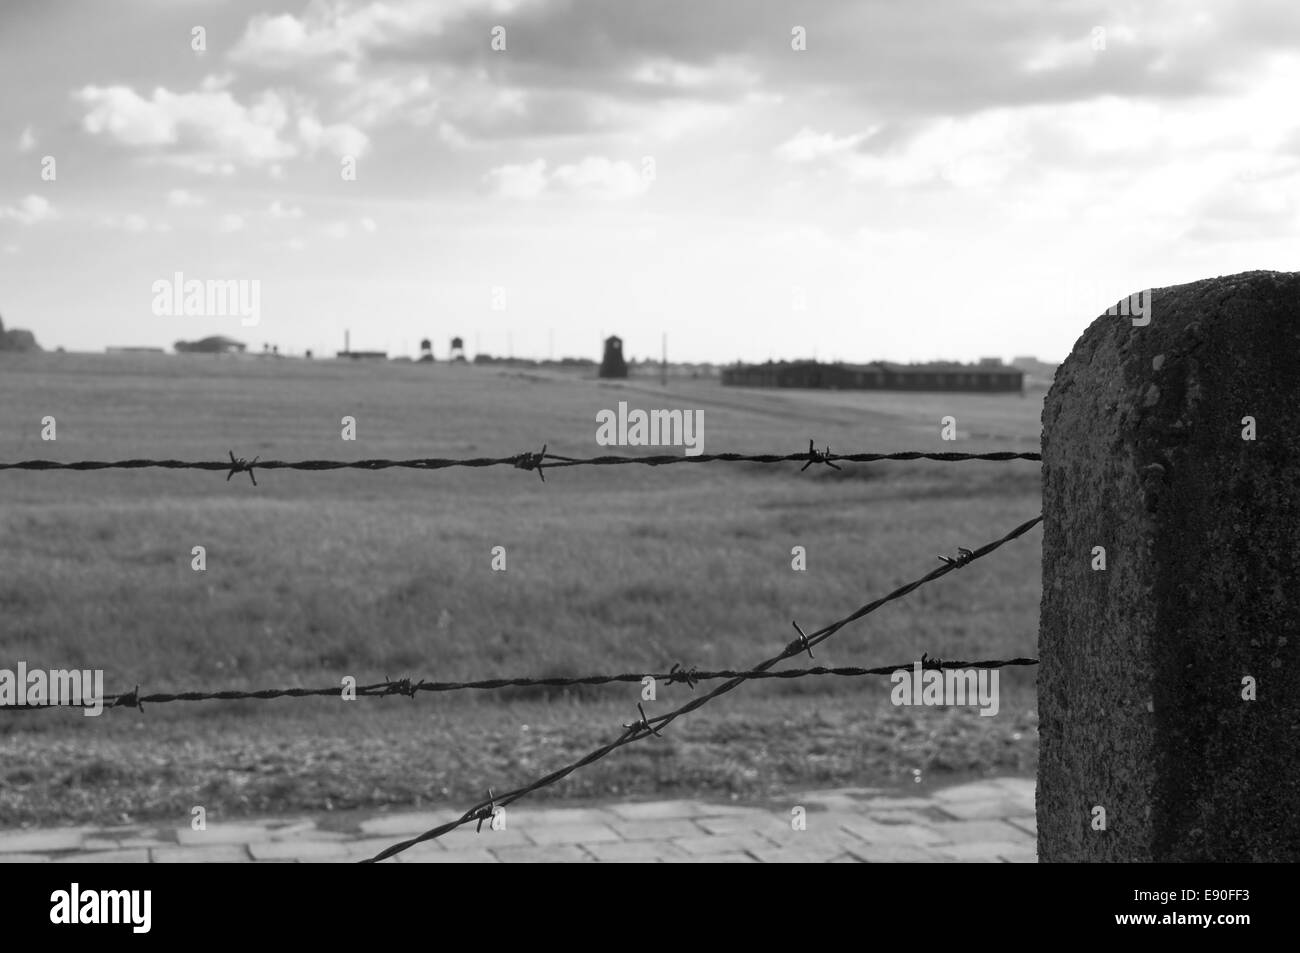 barbed wire fence in concentration camp - Stock Image